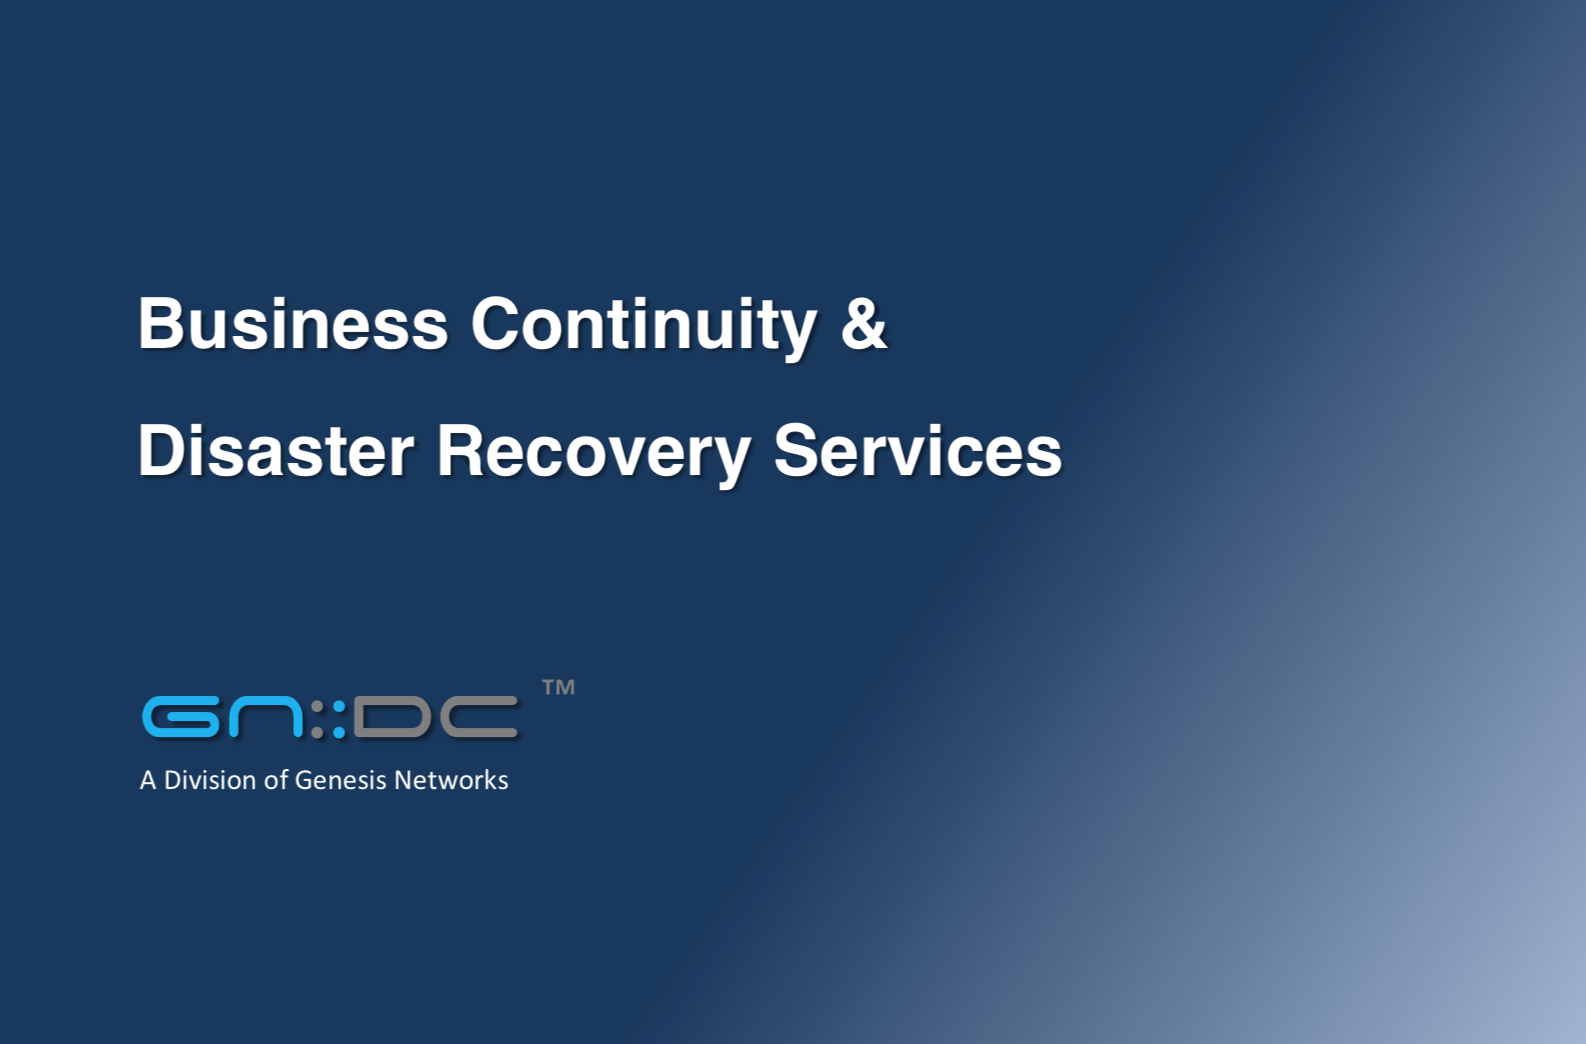 Business Continuity & Disaster Recovery Services